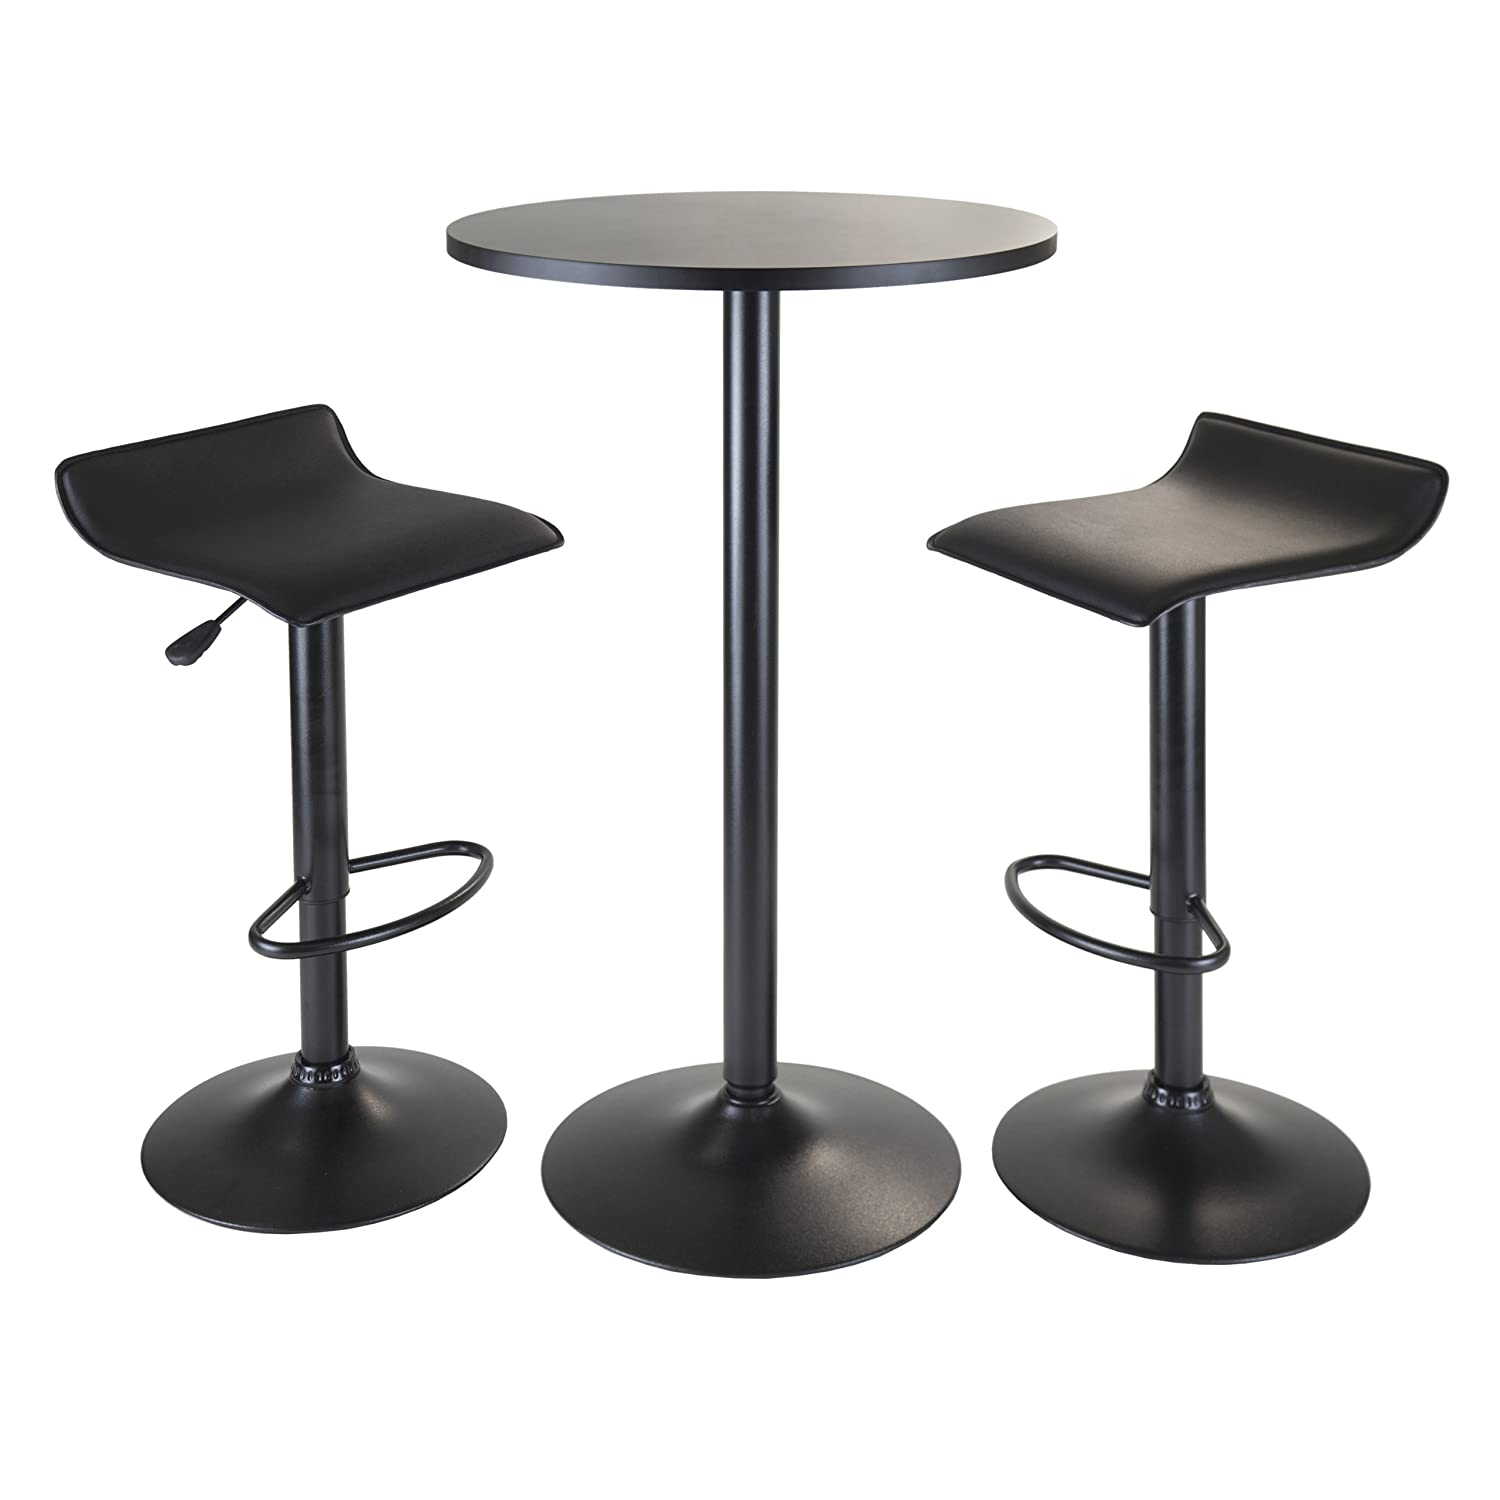 Amazon.com Winsome Obsidian 3-Piece Pub Set with Round Table and 2-Airlift Stools Black Kitchen \u0026 Dining  sc 1 st  Amazon.com & Amazon.com: Winsome Obsidian 3-Piece Pub Set with Round Table and 2 ...